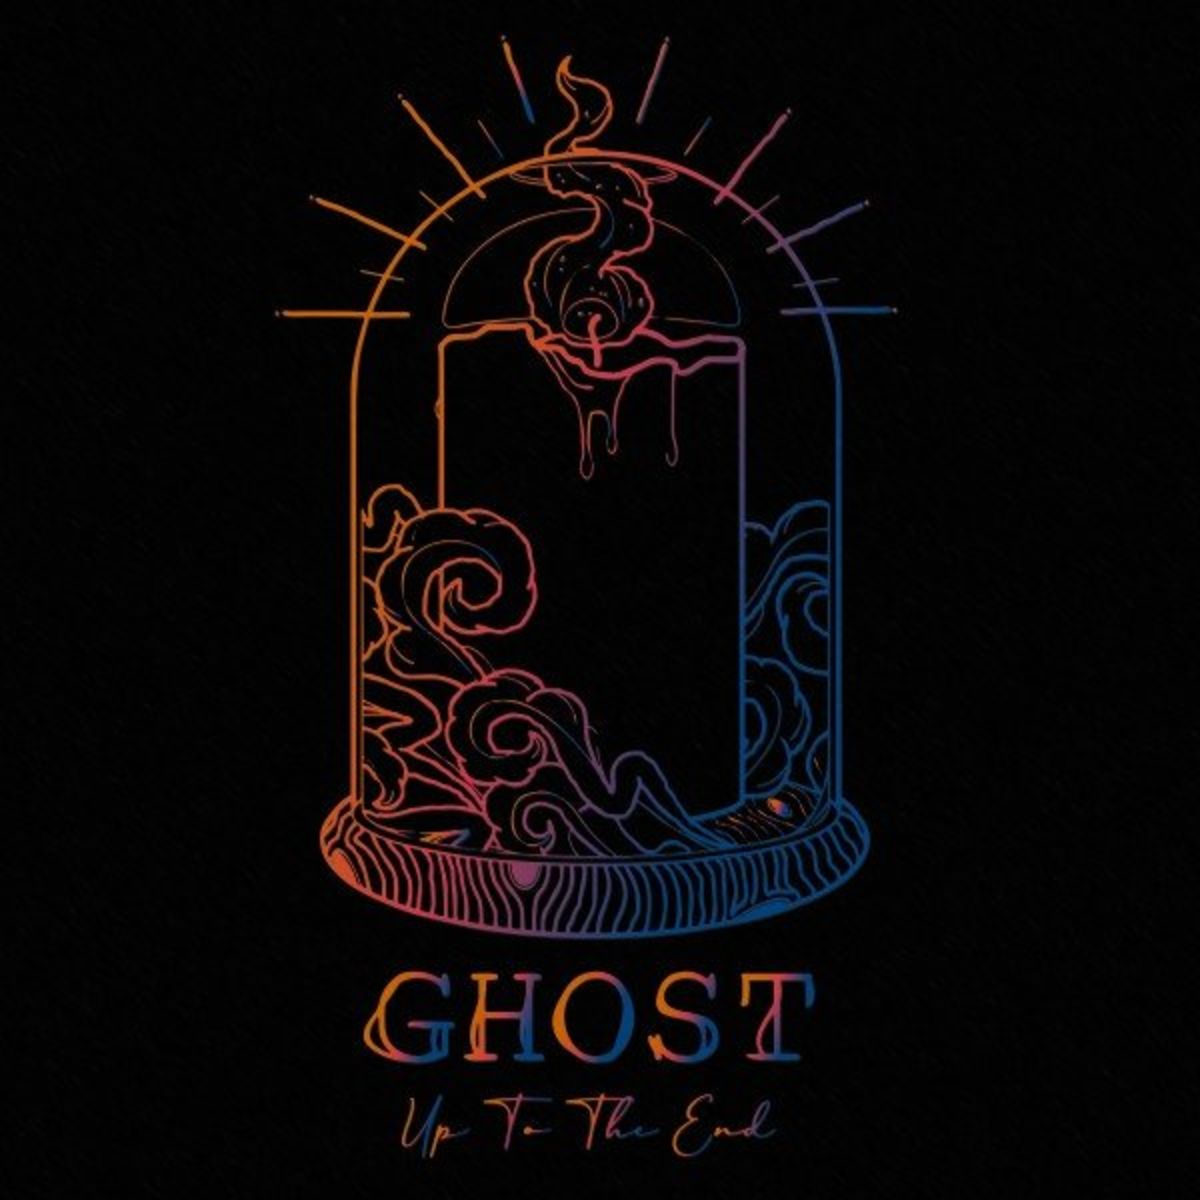 Up to the end - Ghost [single] (2020)